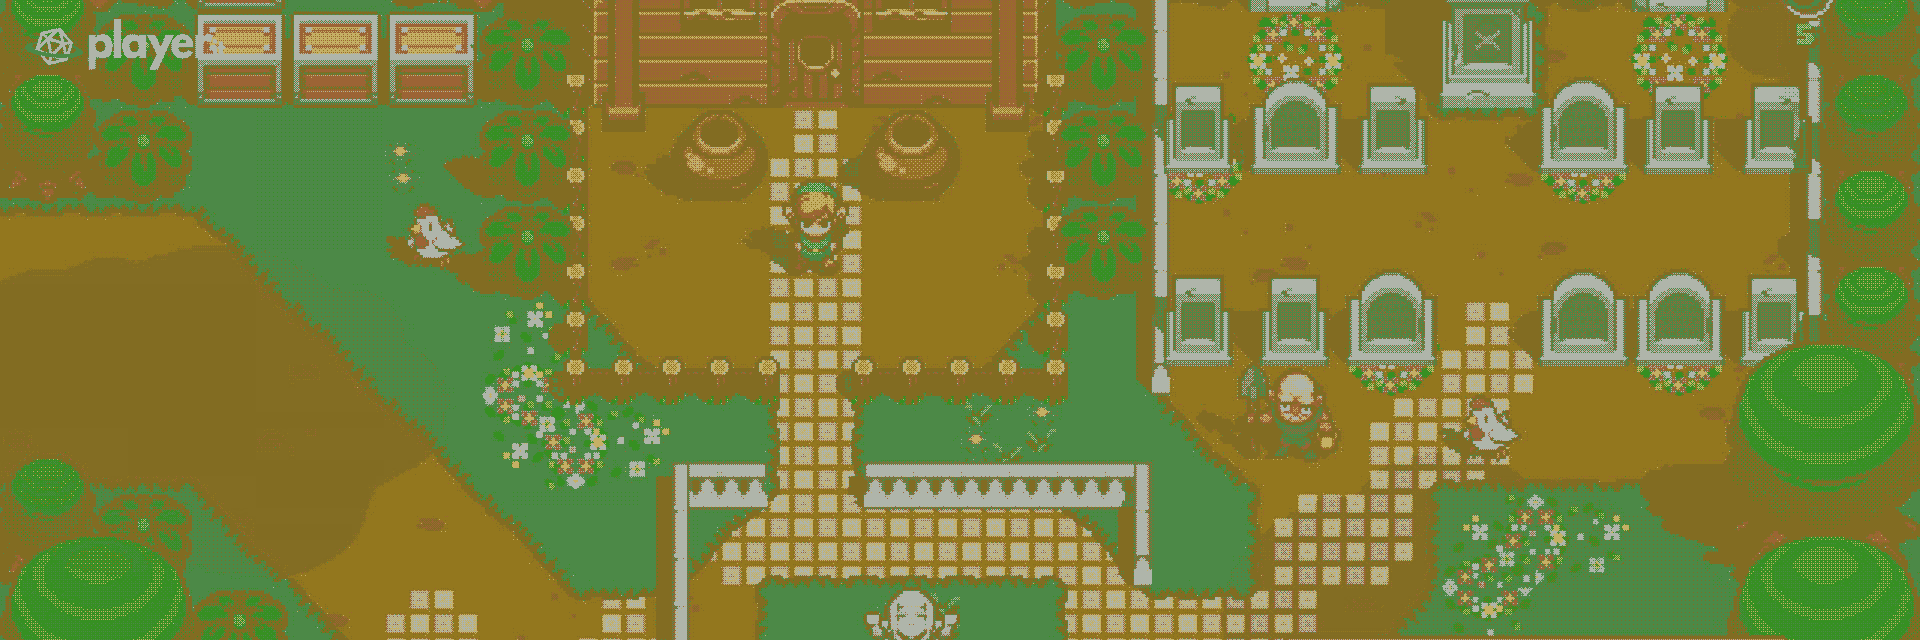 Cadence of Hyrule: Crypt of the NecroDancer Featuring The Legend of Zelda wallpaper